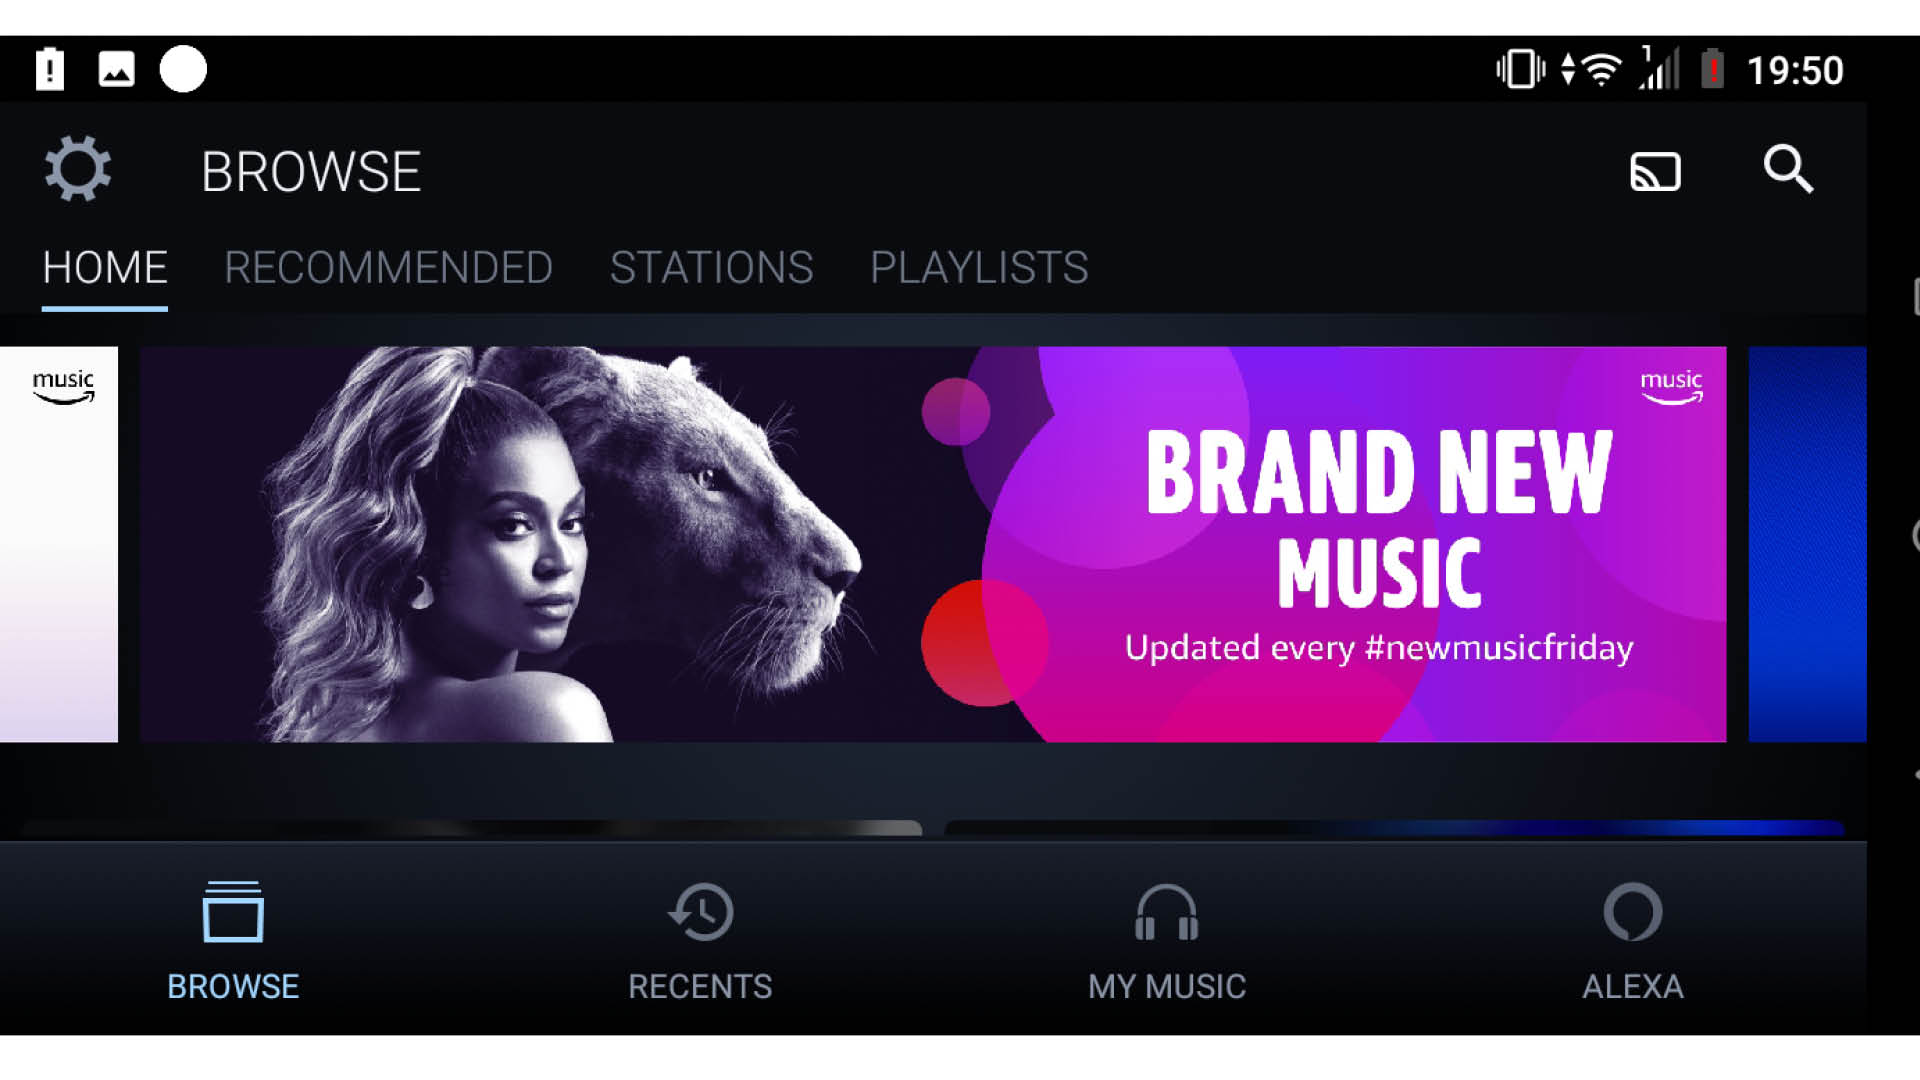 How to Share a Playlist on Amazon Music